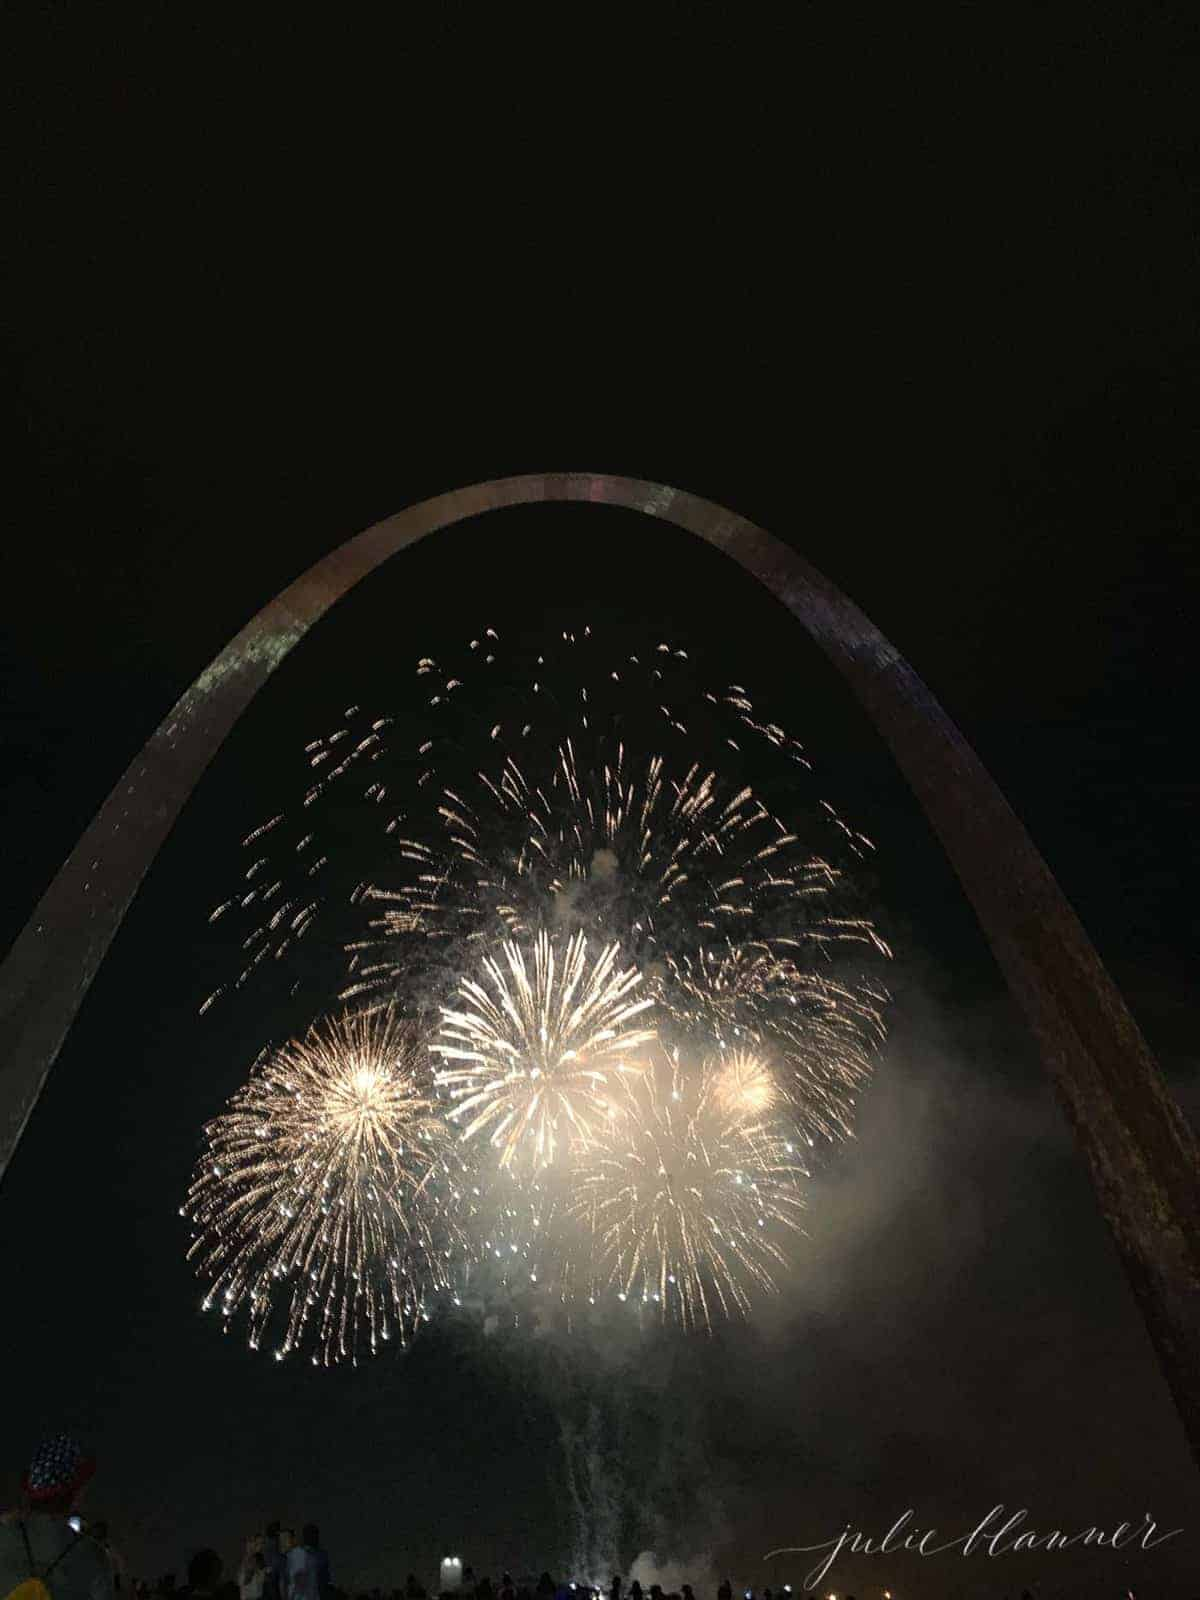 Nighttime image of the St. Louis Arch with fireworks in the foreground,